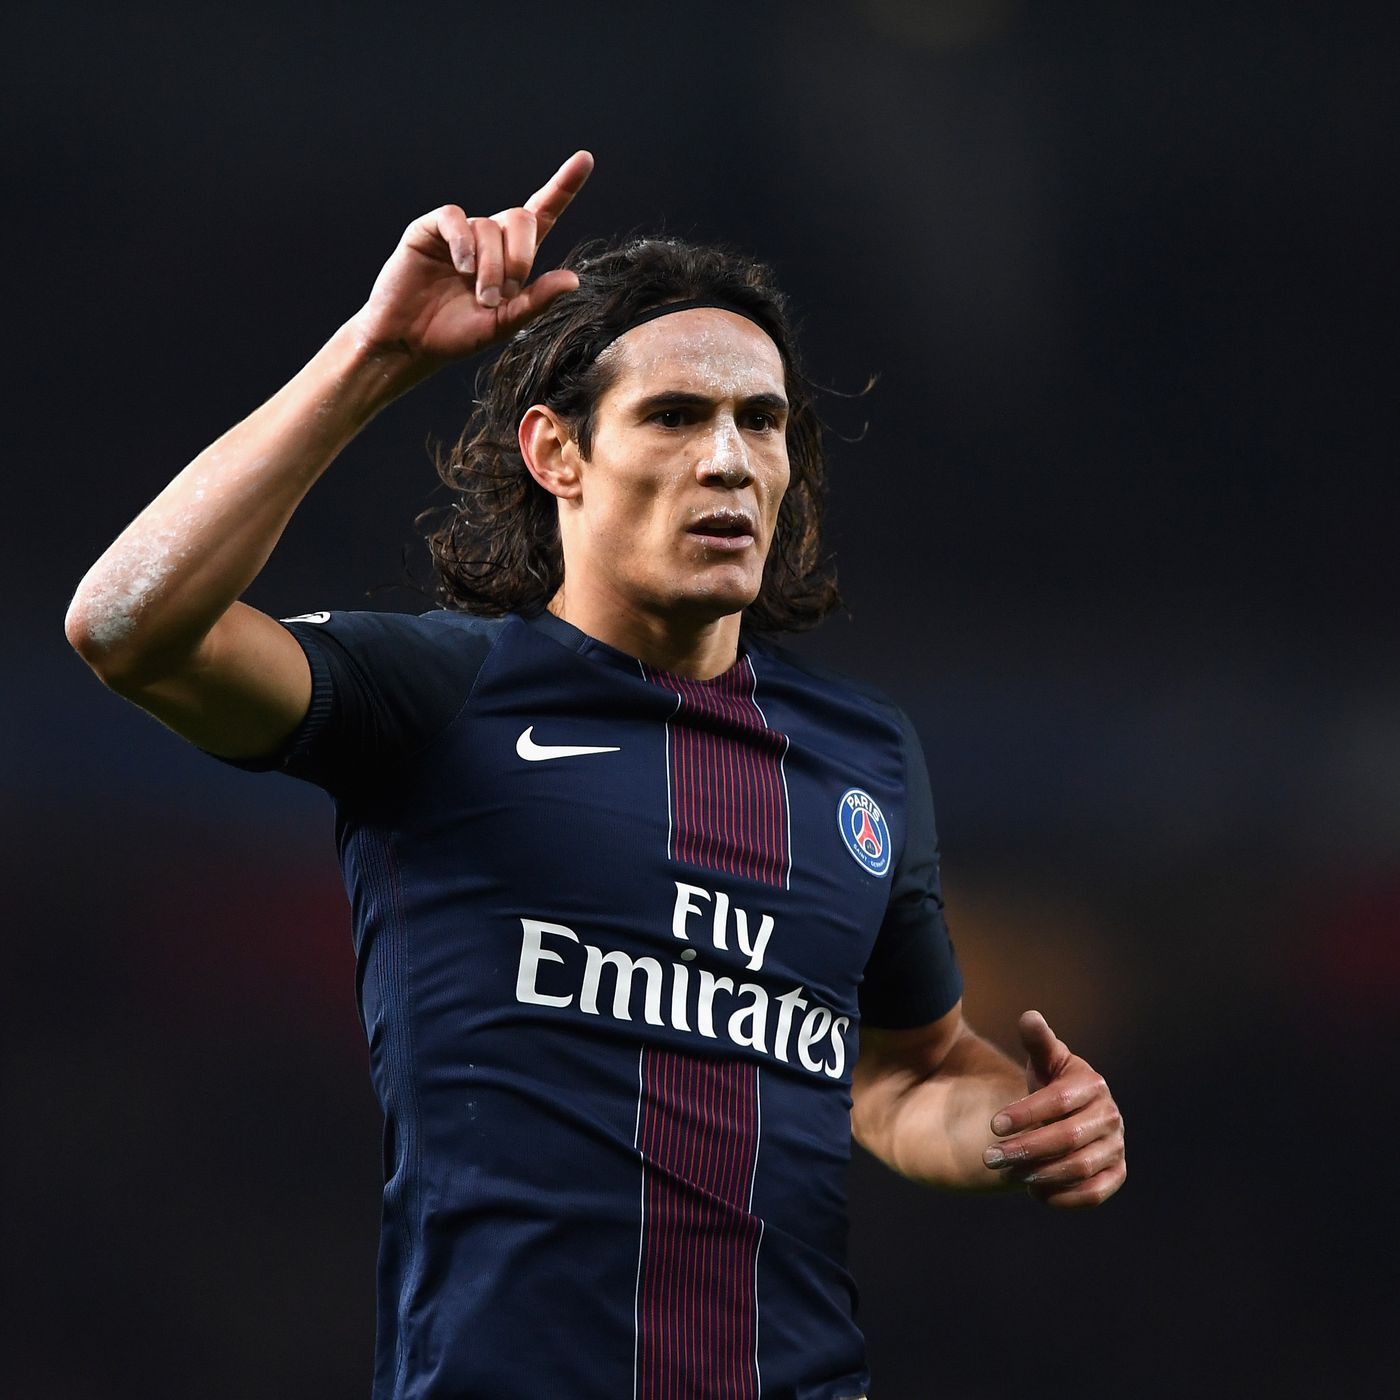 Edinson Cavani Frustrates But He Can Fire Psg Past Barcelona Sbnation Com